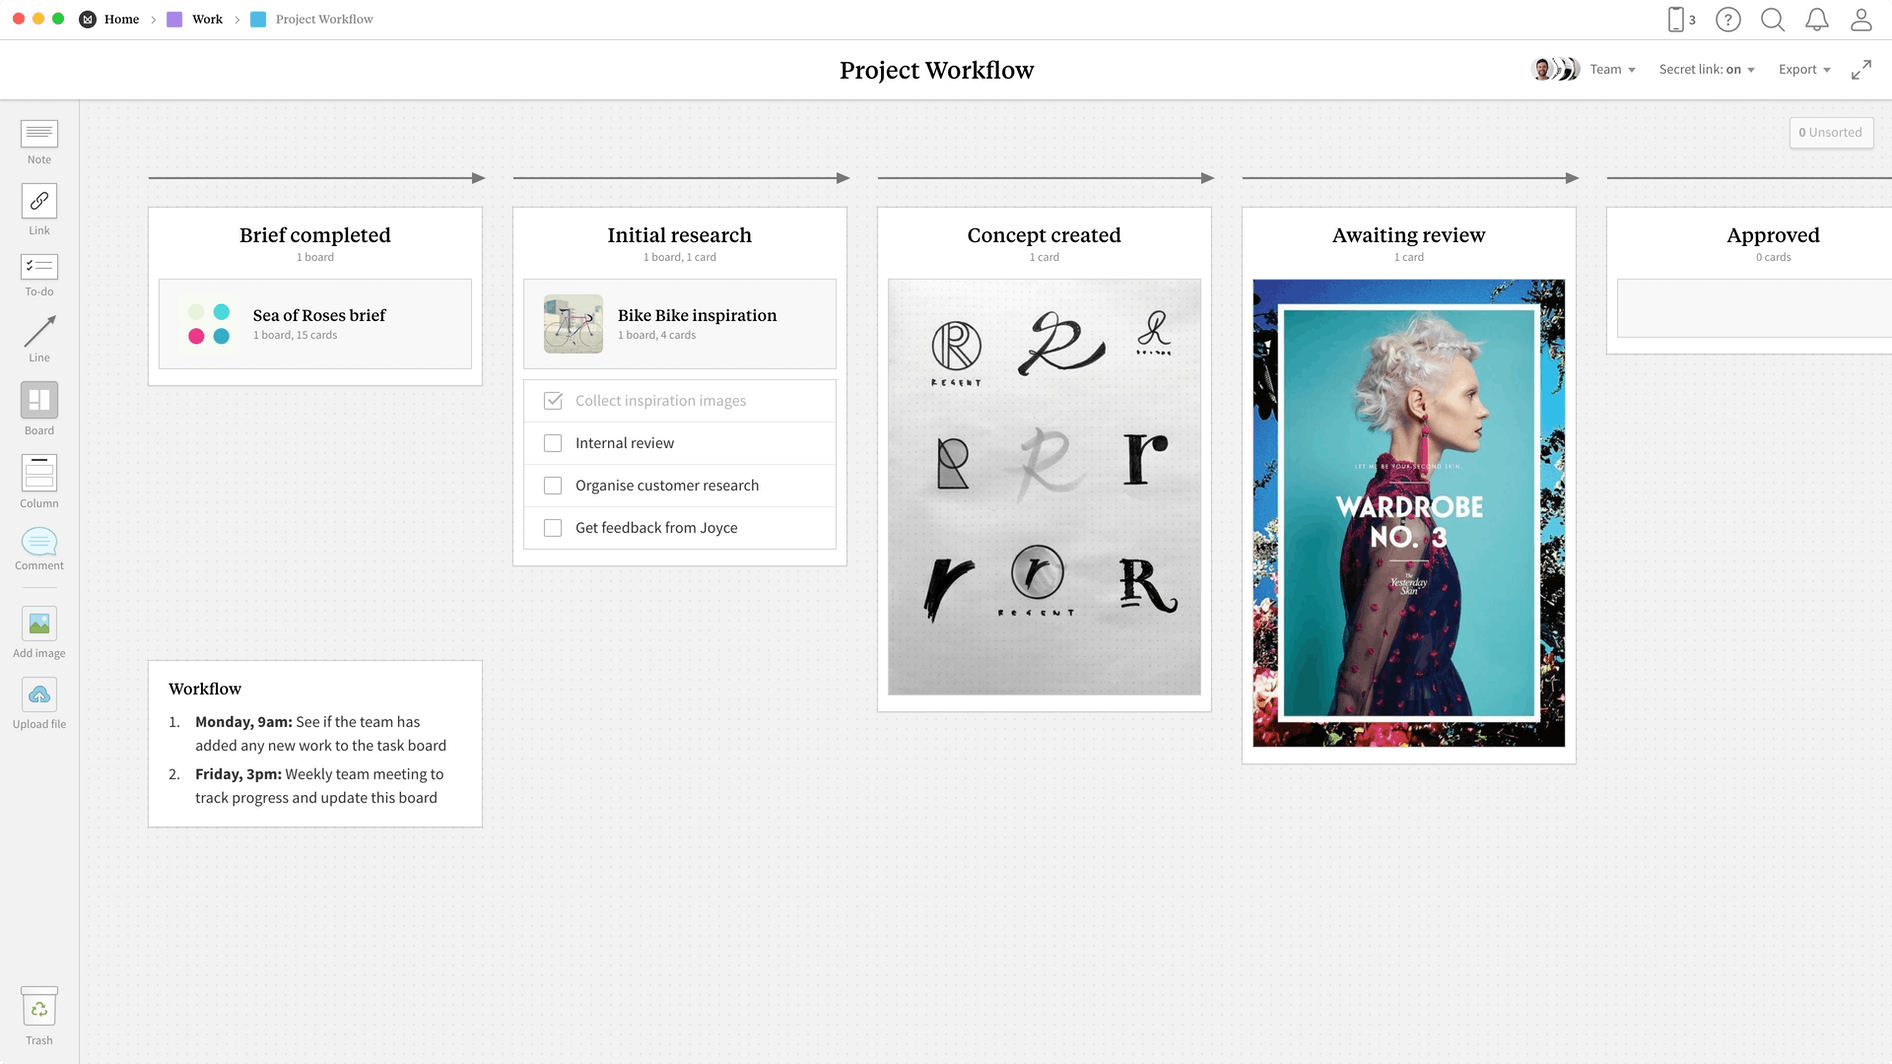 Project Workflow Template, within the Milanote app